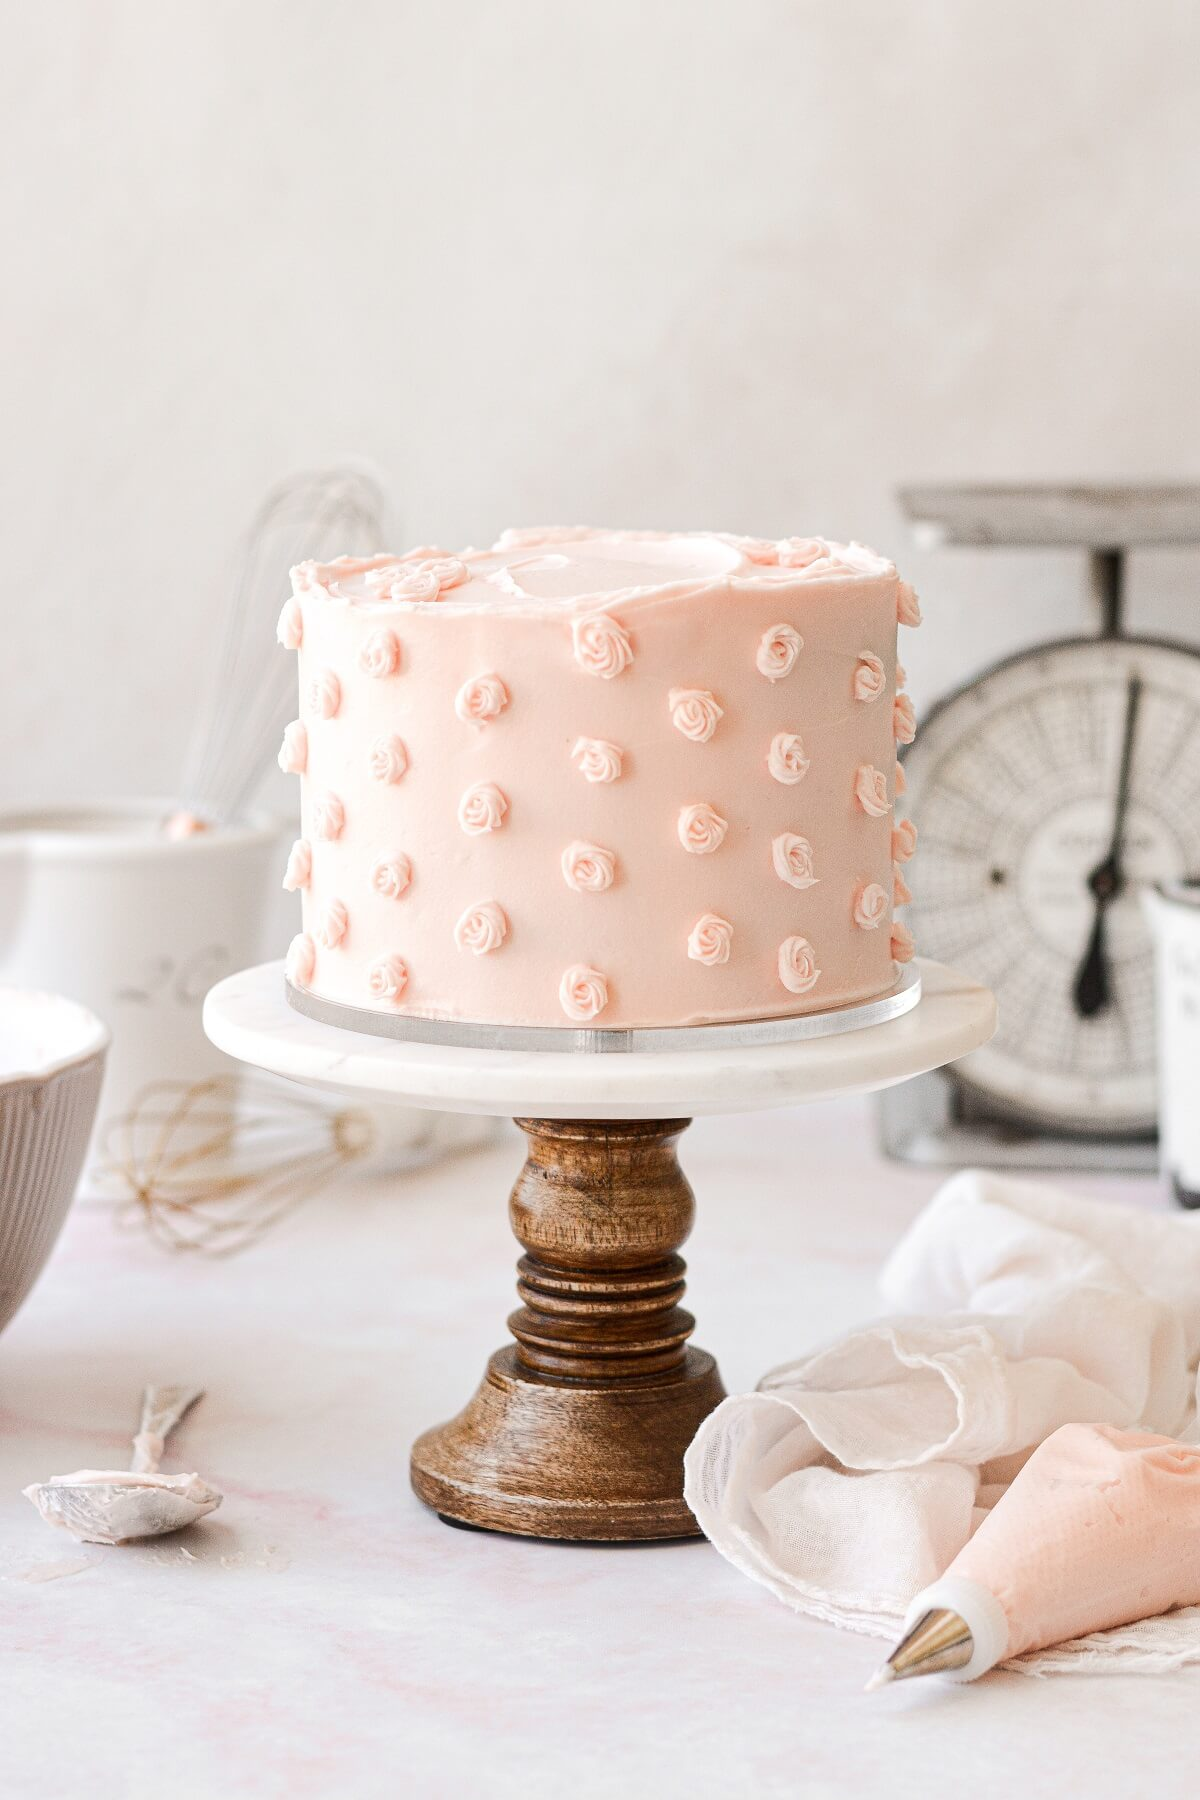 A pale pink frosted cake, with buttercream rosettes, on a marble and wood cake stand.